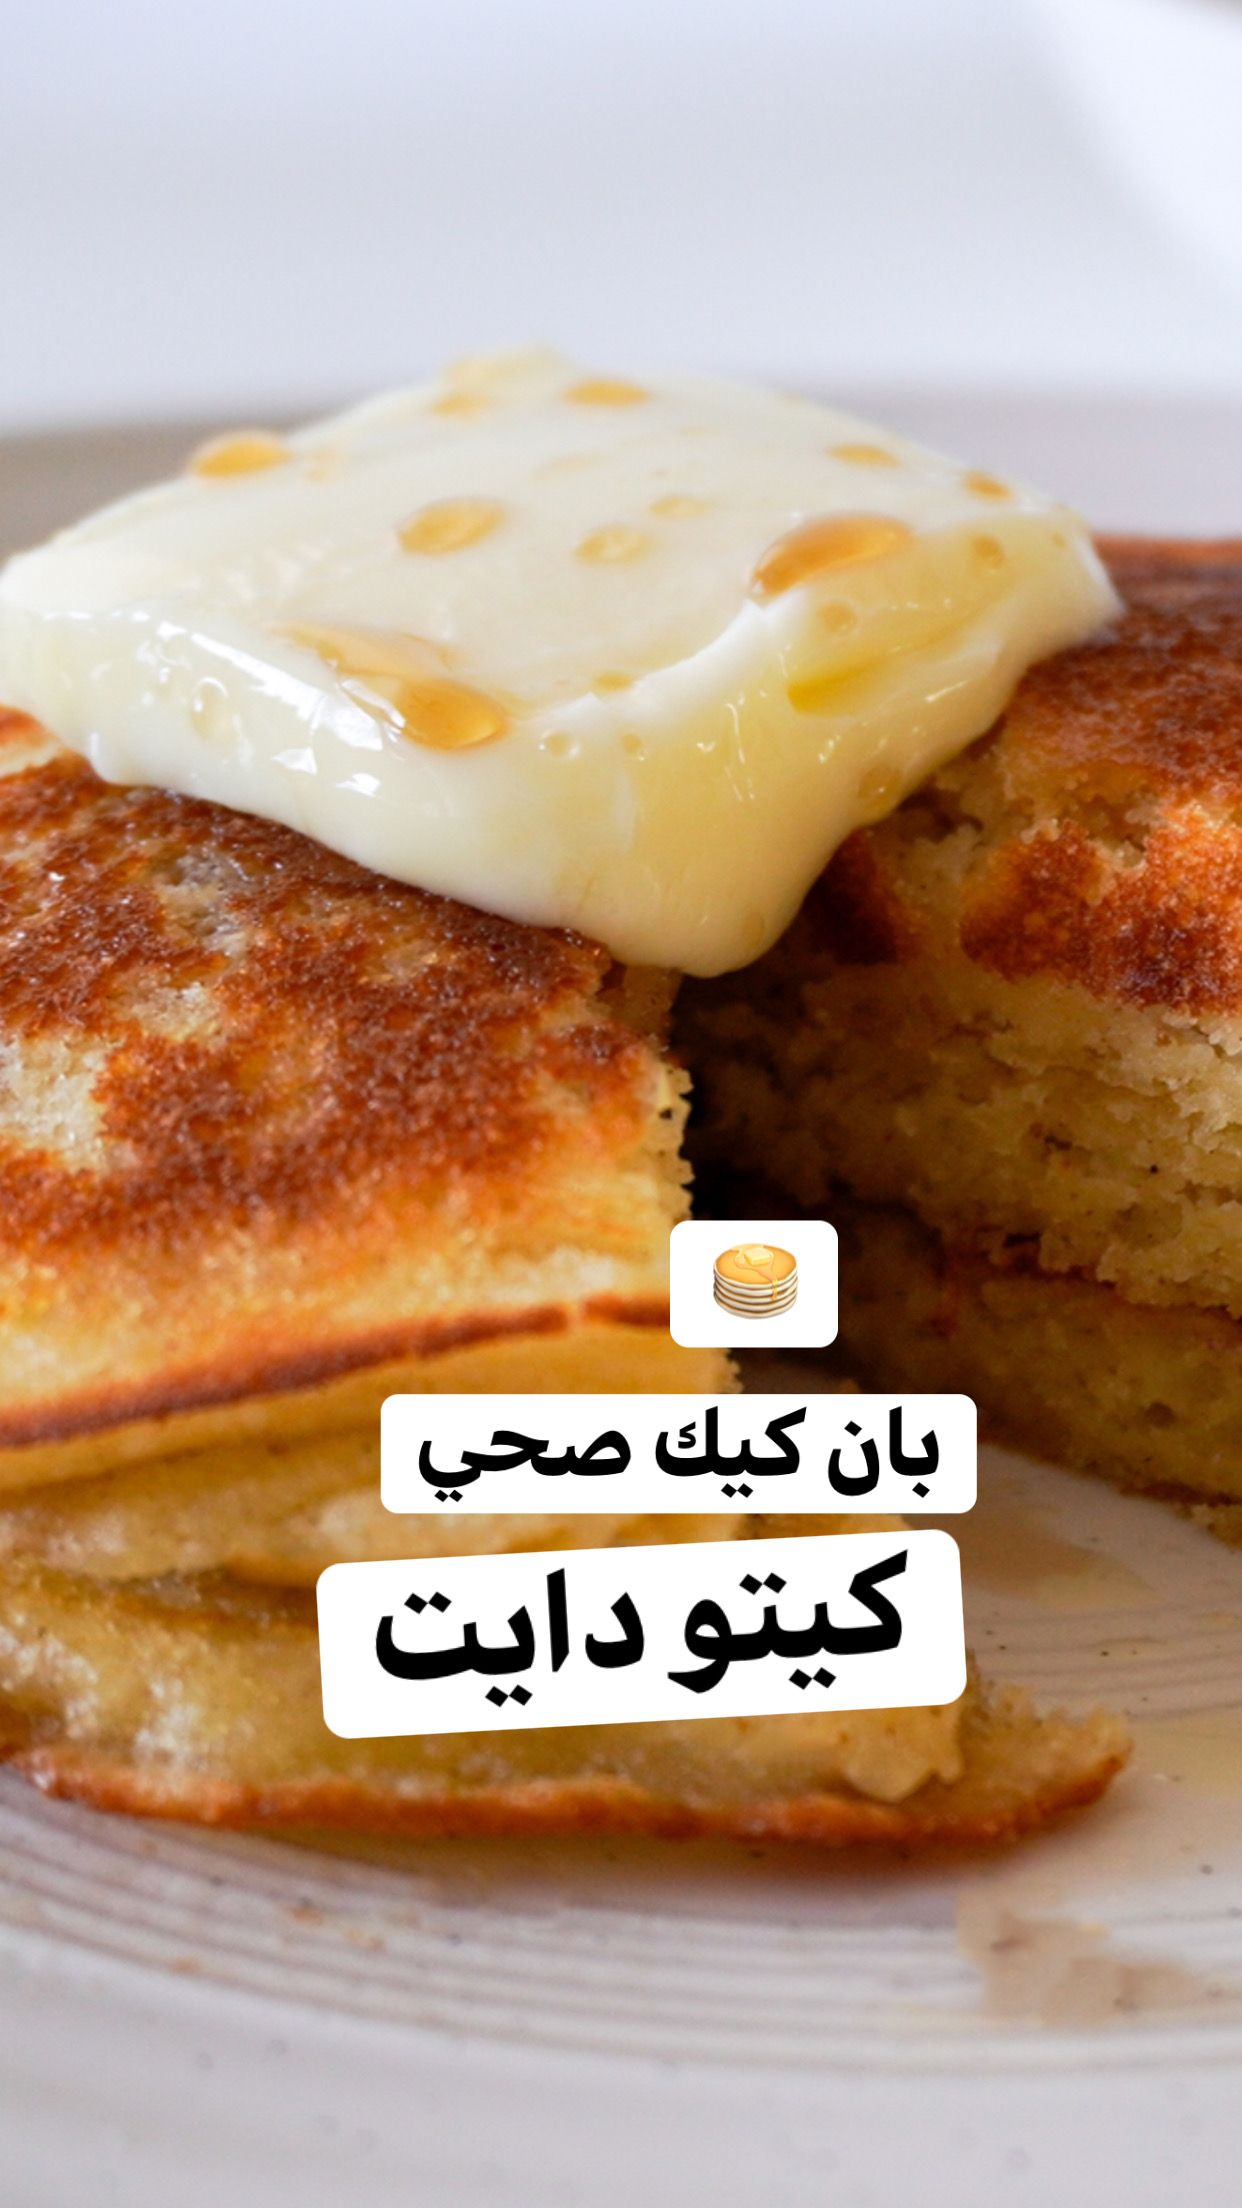 كيتو بان كيك Recipe Food Breakfast French Toast